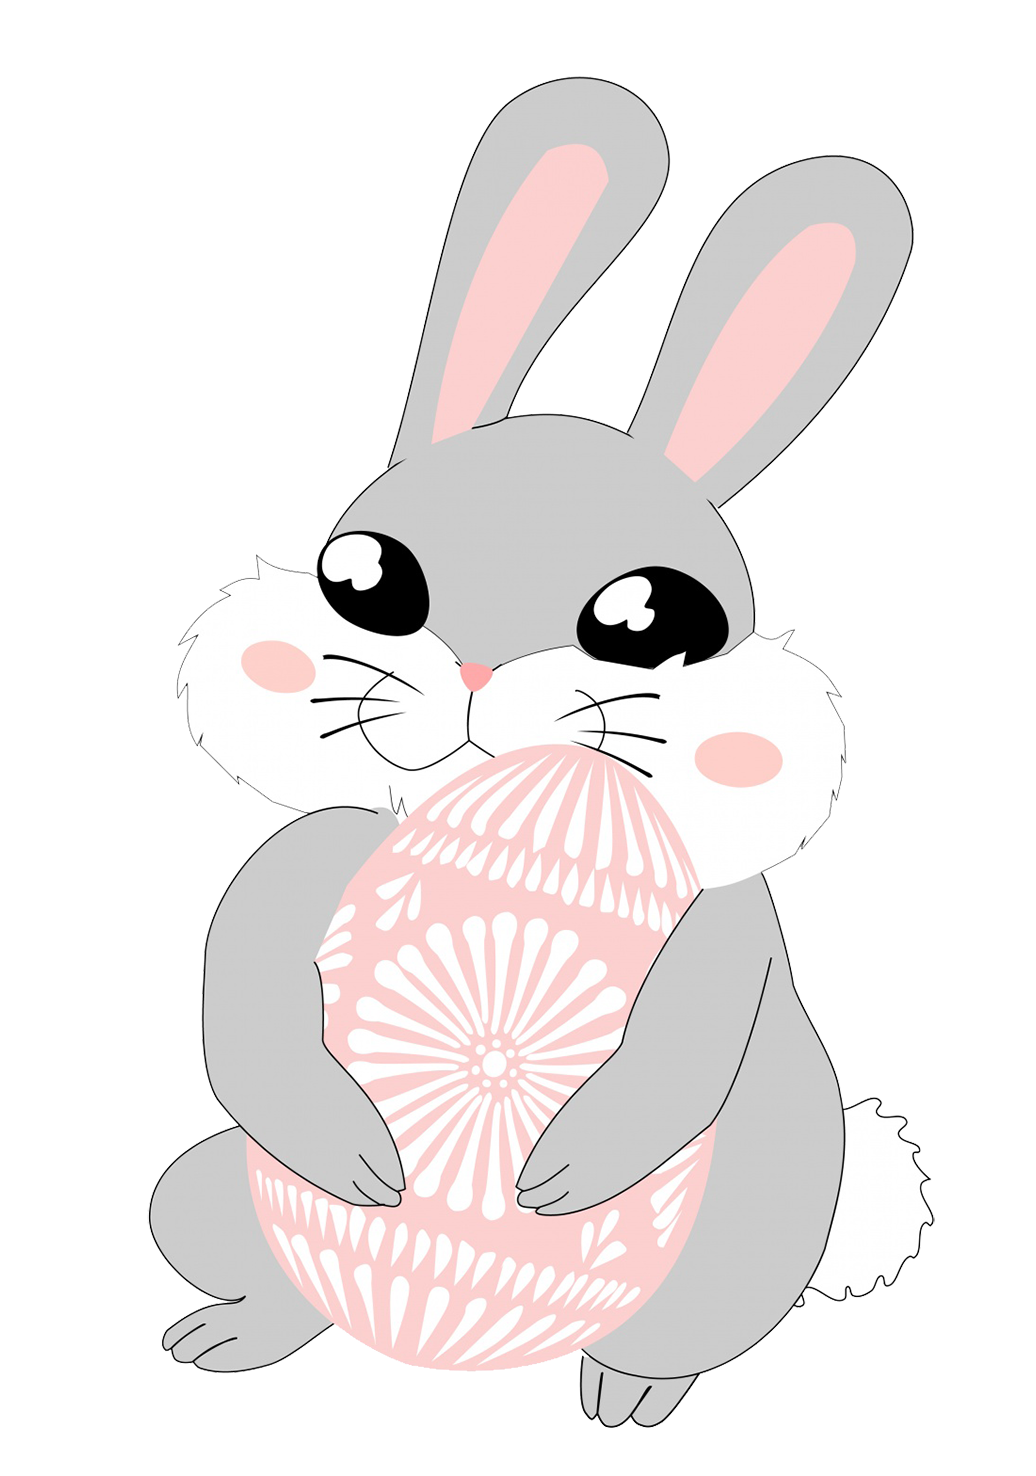 Very cute Easter bunny with egg